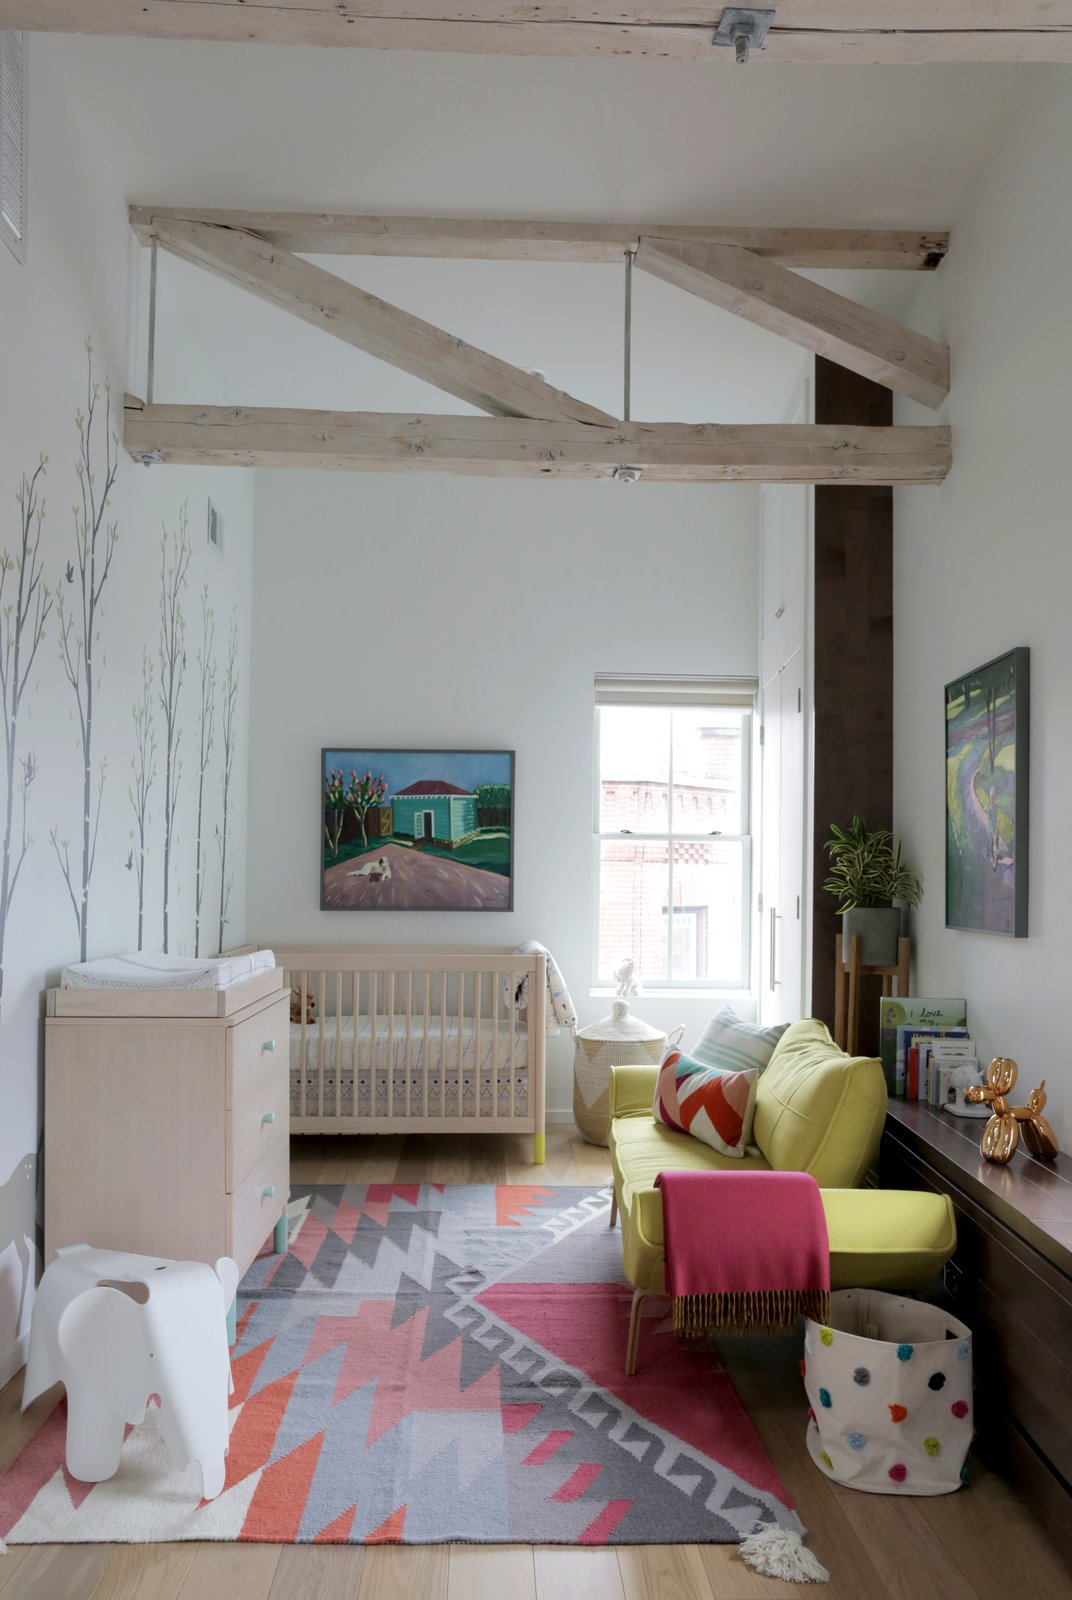 Kids Room, Bedroom Room Type, and Light Hardwood Floor For the couple, who are expecting, adding a nursery was a key component of the renovation. The home's historic trusses were lightly sanded and whitewashed.  Photo 5 of 5 in This Modern Boston Renovation Expertly Mixes in Colorful Craft Finds